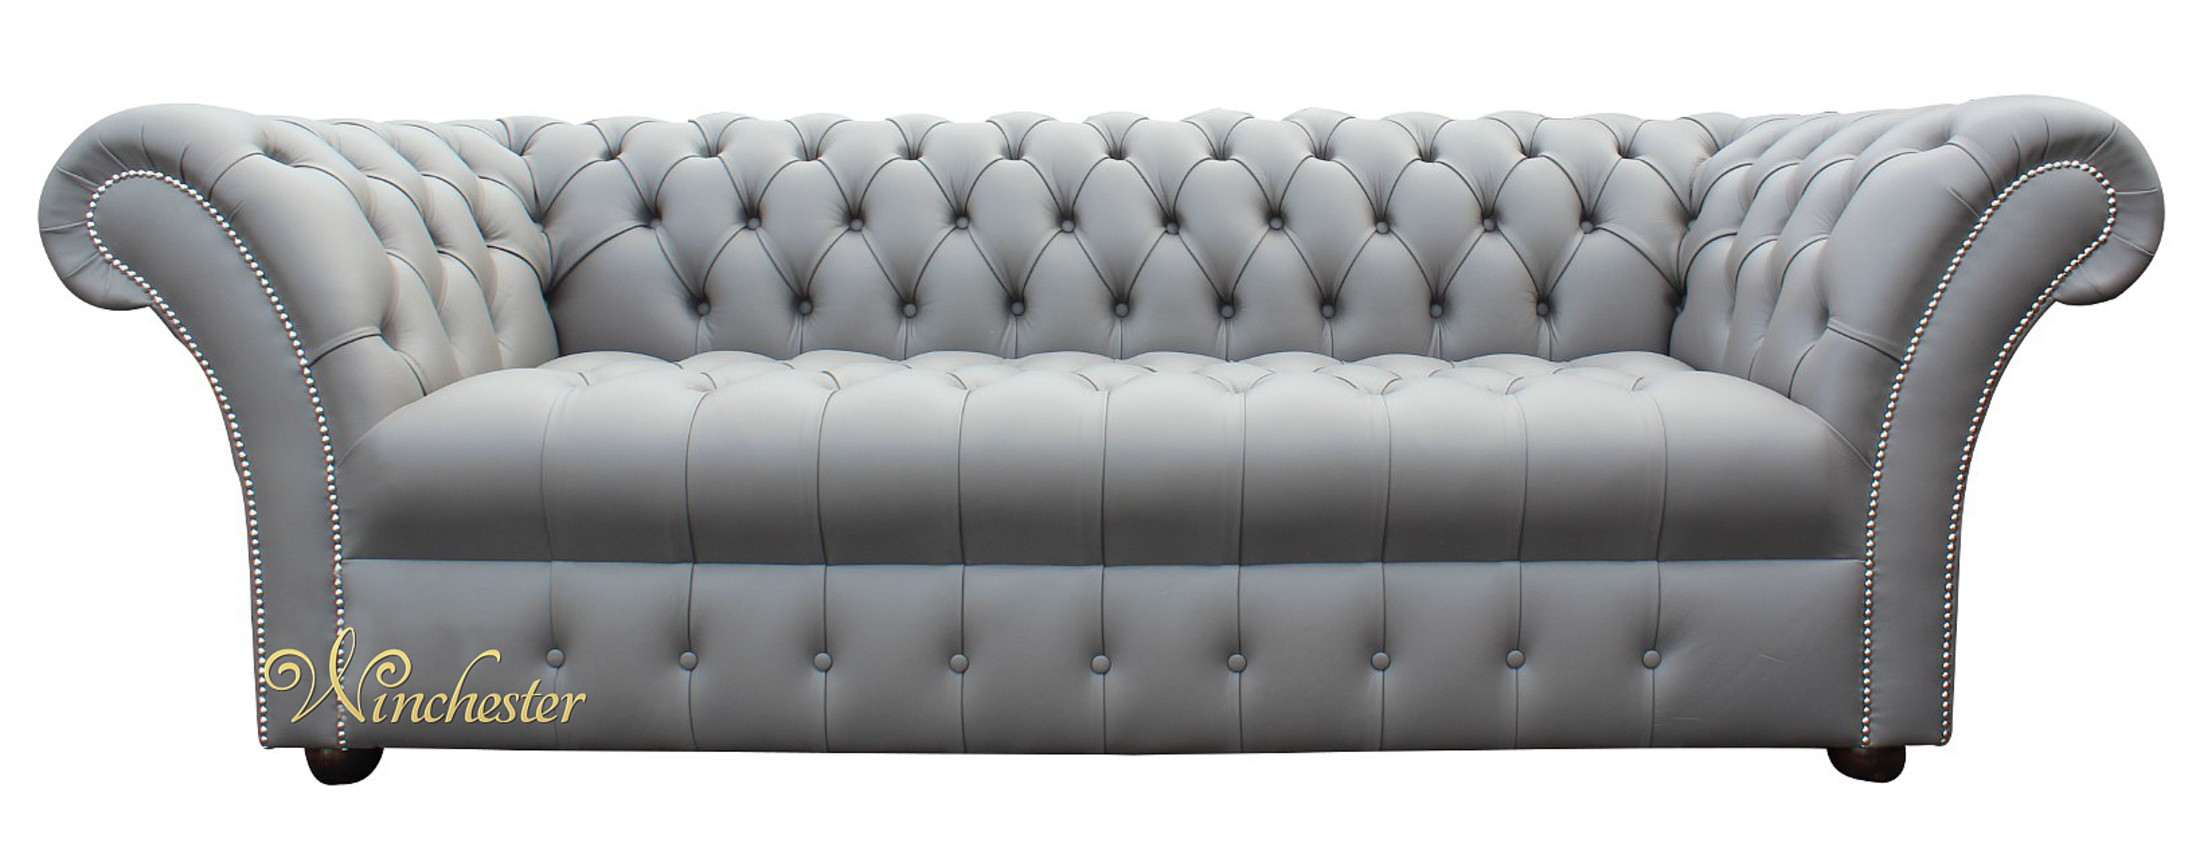 Chesterfield Grey Sofa 11 Best Sofas Images On Pinterest Leather Chesterfield Grey TheSofa